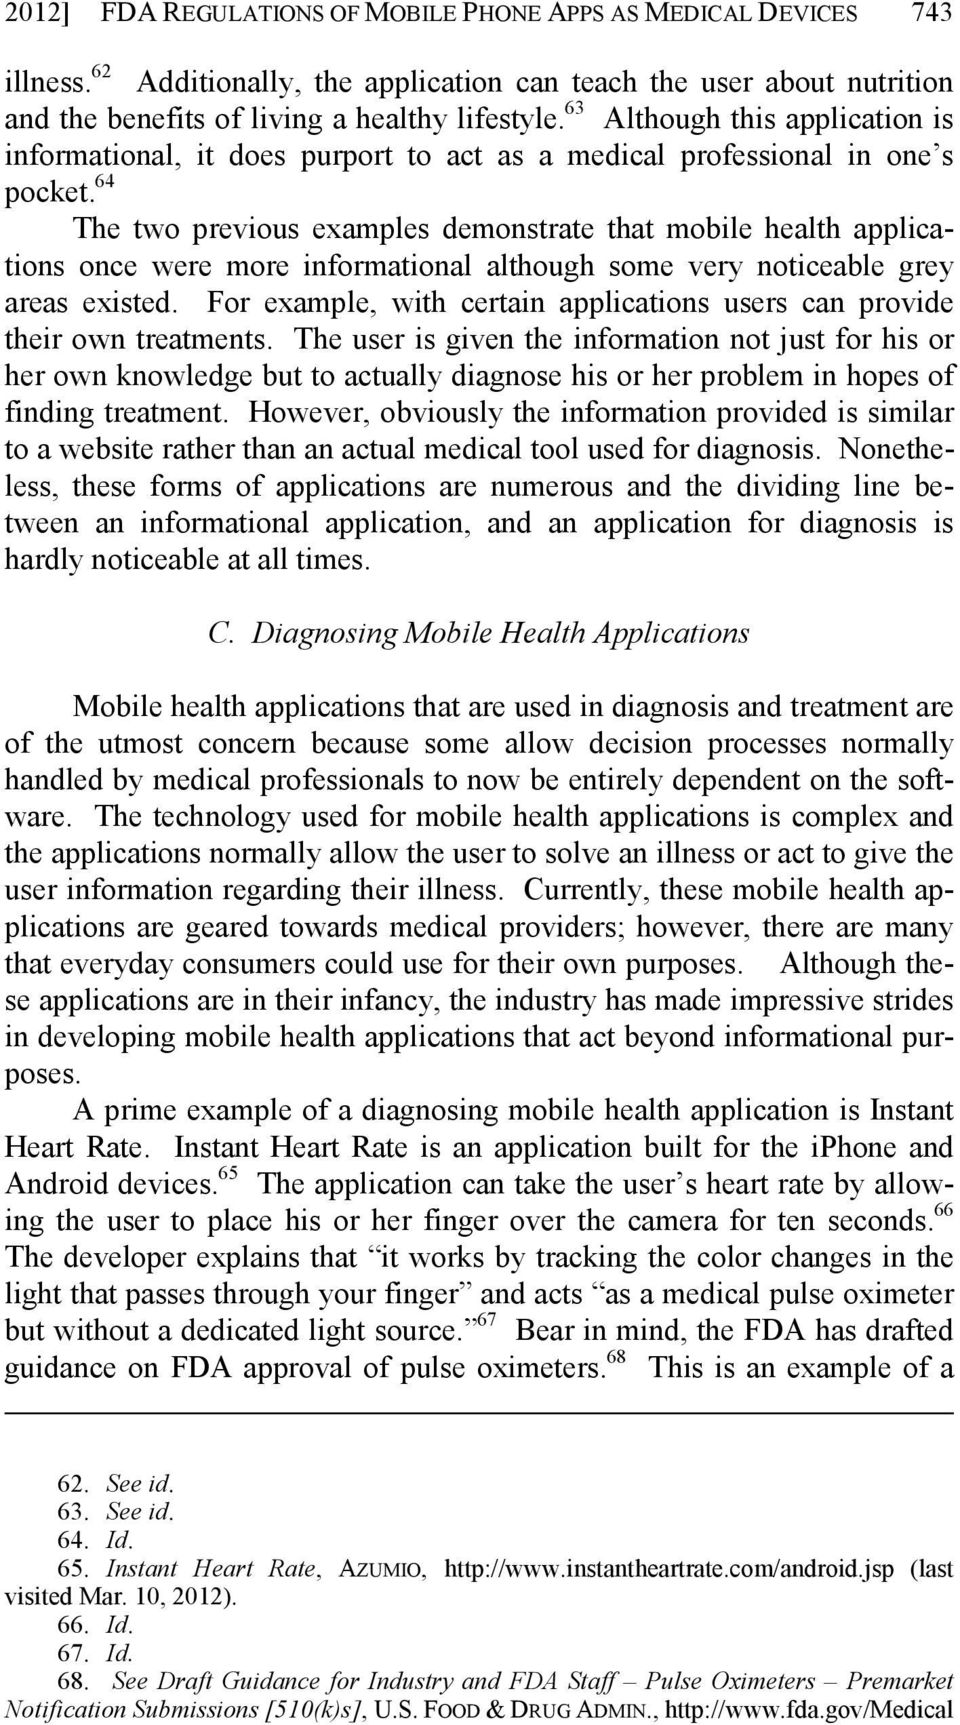 64 The two previous examples demonstrate that mobile health applications once were more informational although some very noticeable grey areas existed.